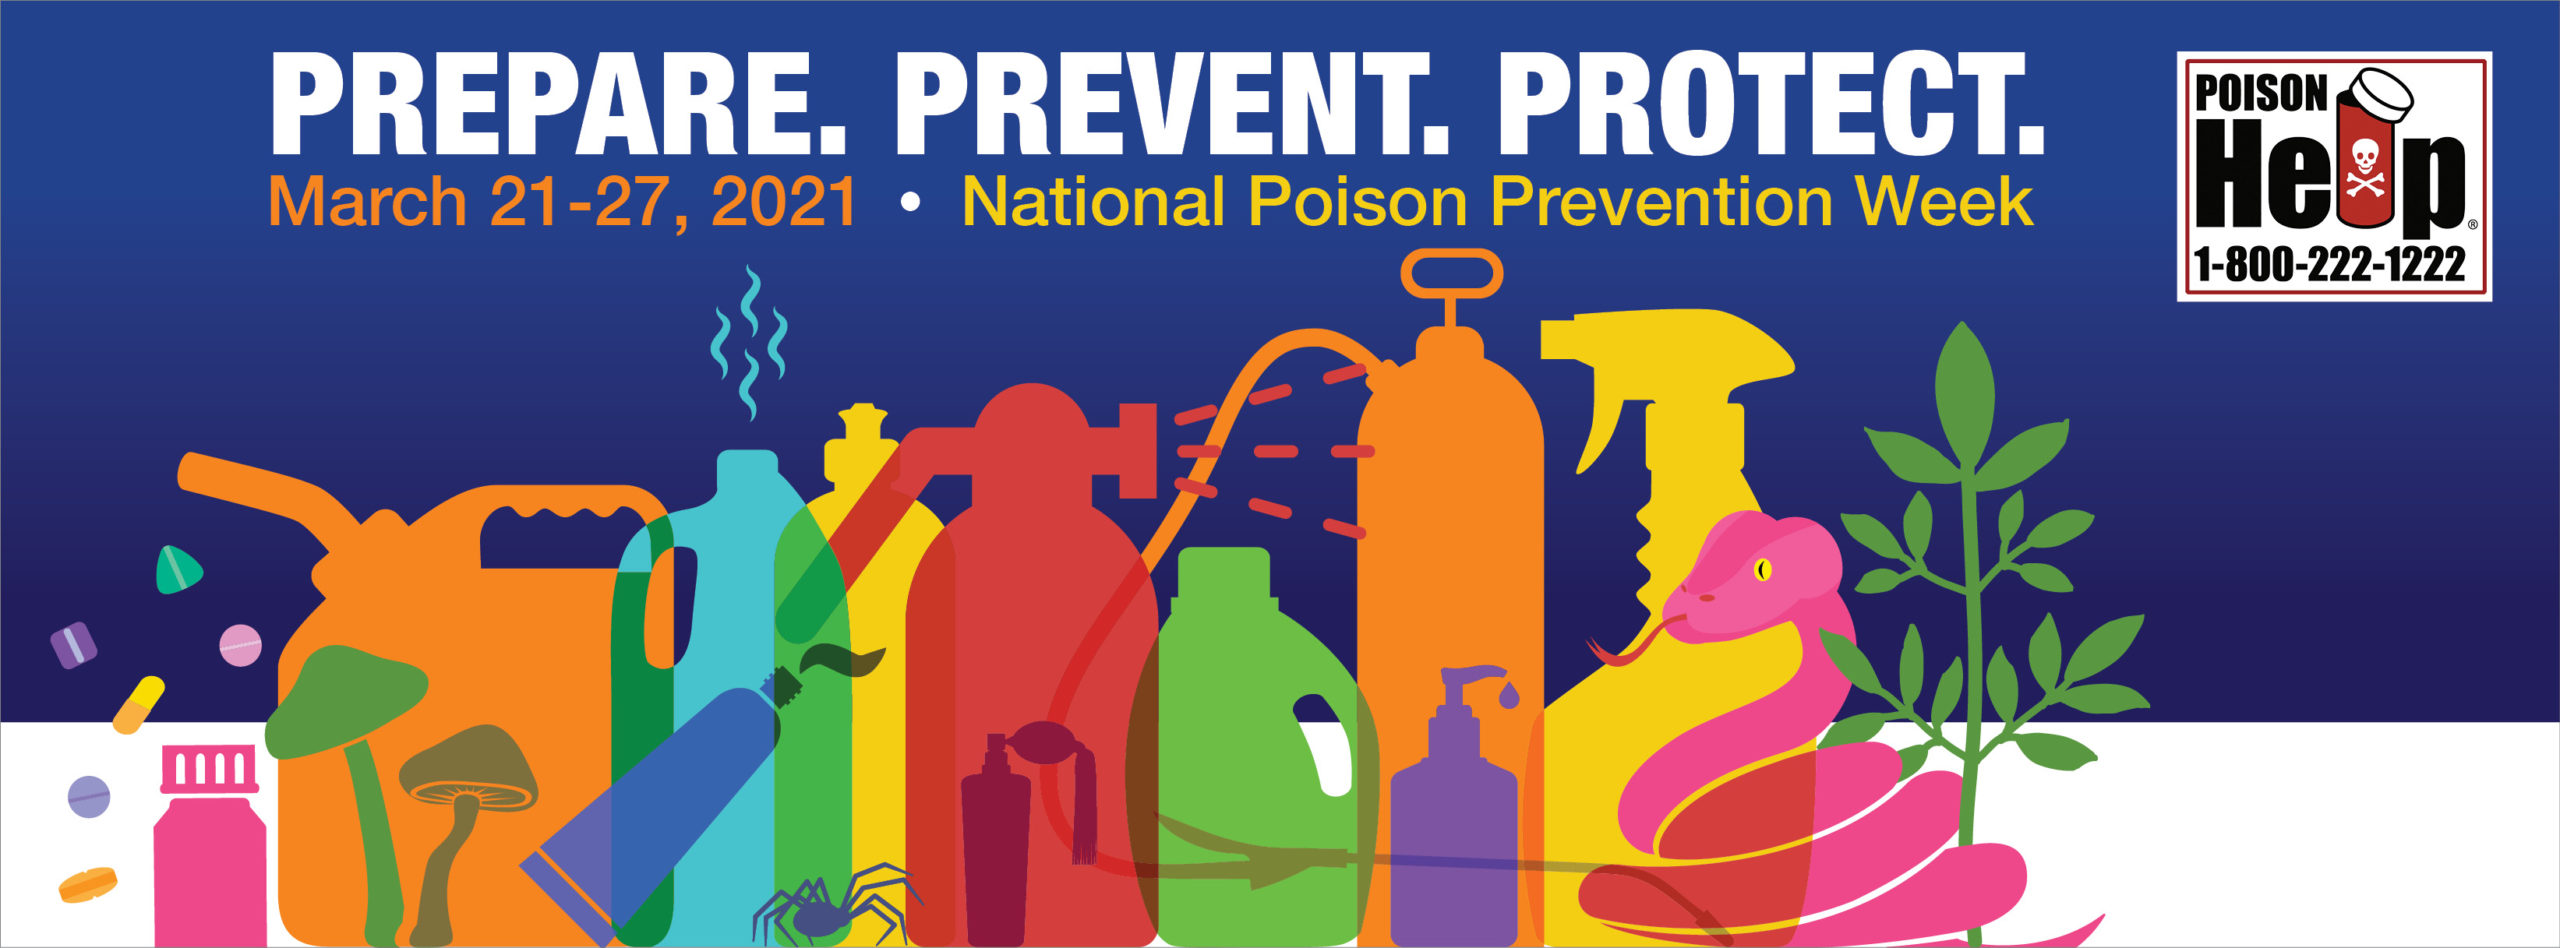 2021 AAPCC National Poison Prevention Week Designs English FINAL Main Banner